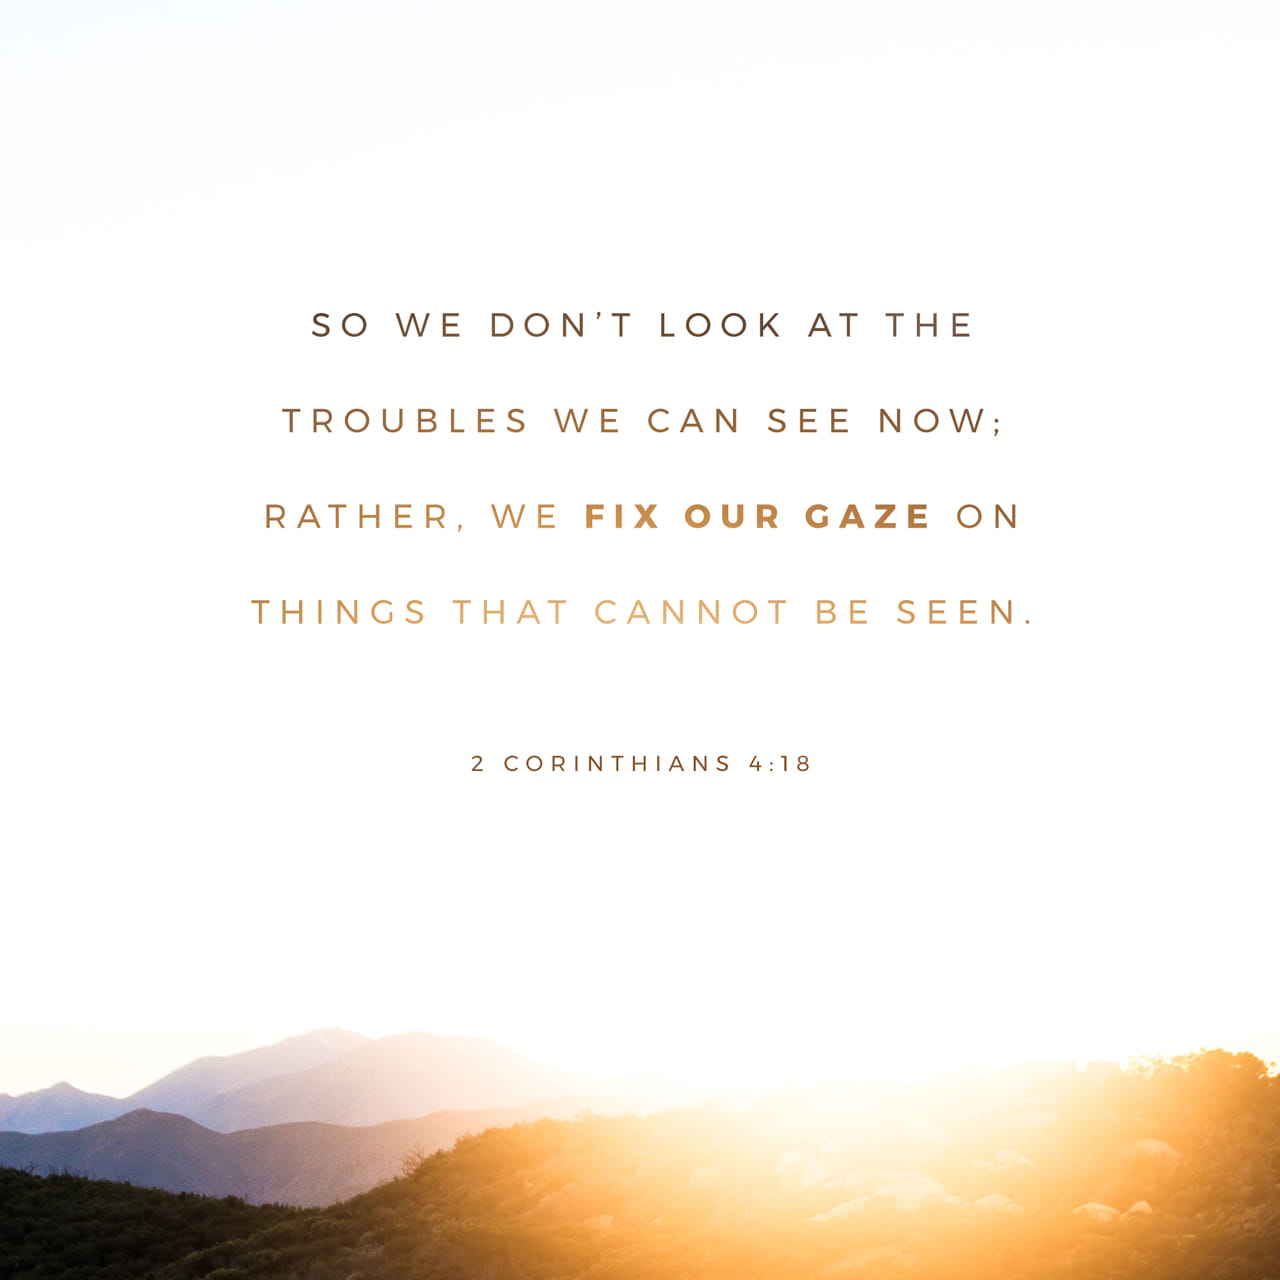 2 Corinthians 4:18 While we look not at the things which are seen, but at the things which are not seen: for the things which are seen are temporal; but the things which are not seen are eternal. | King James Version (KJV)